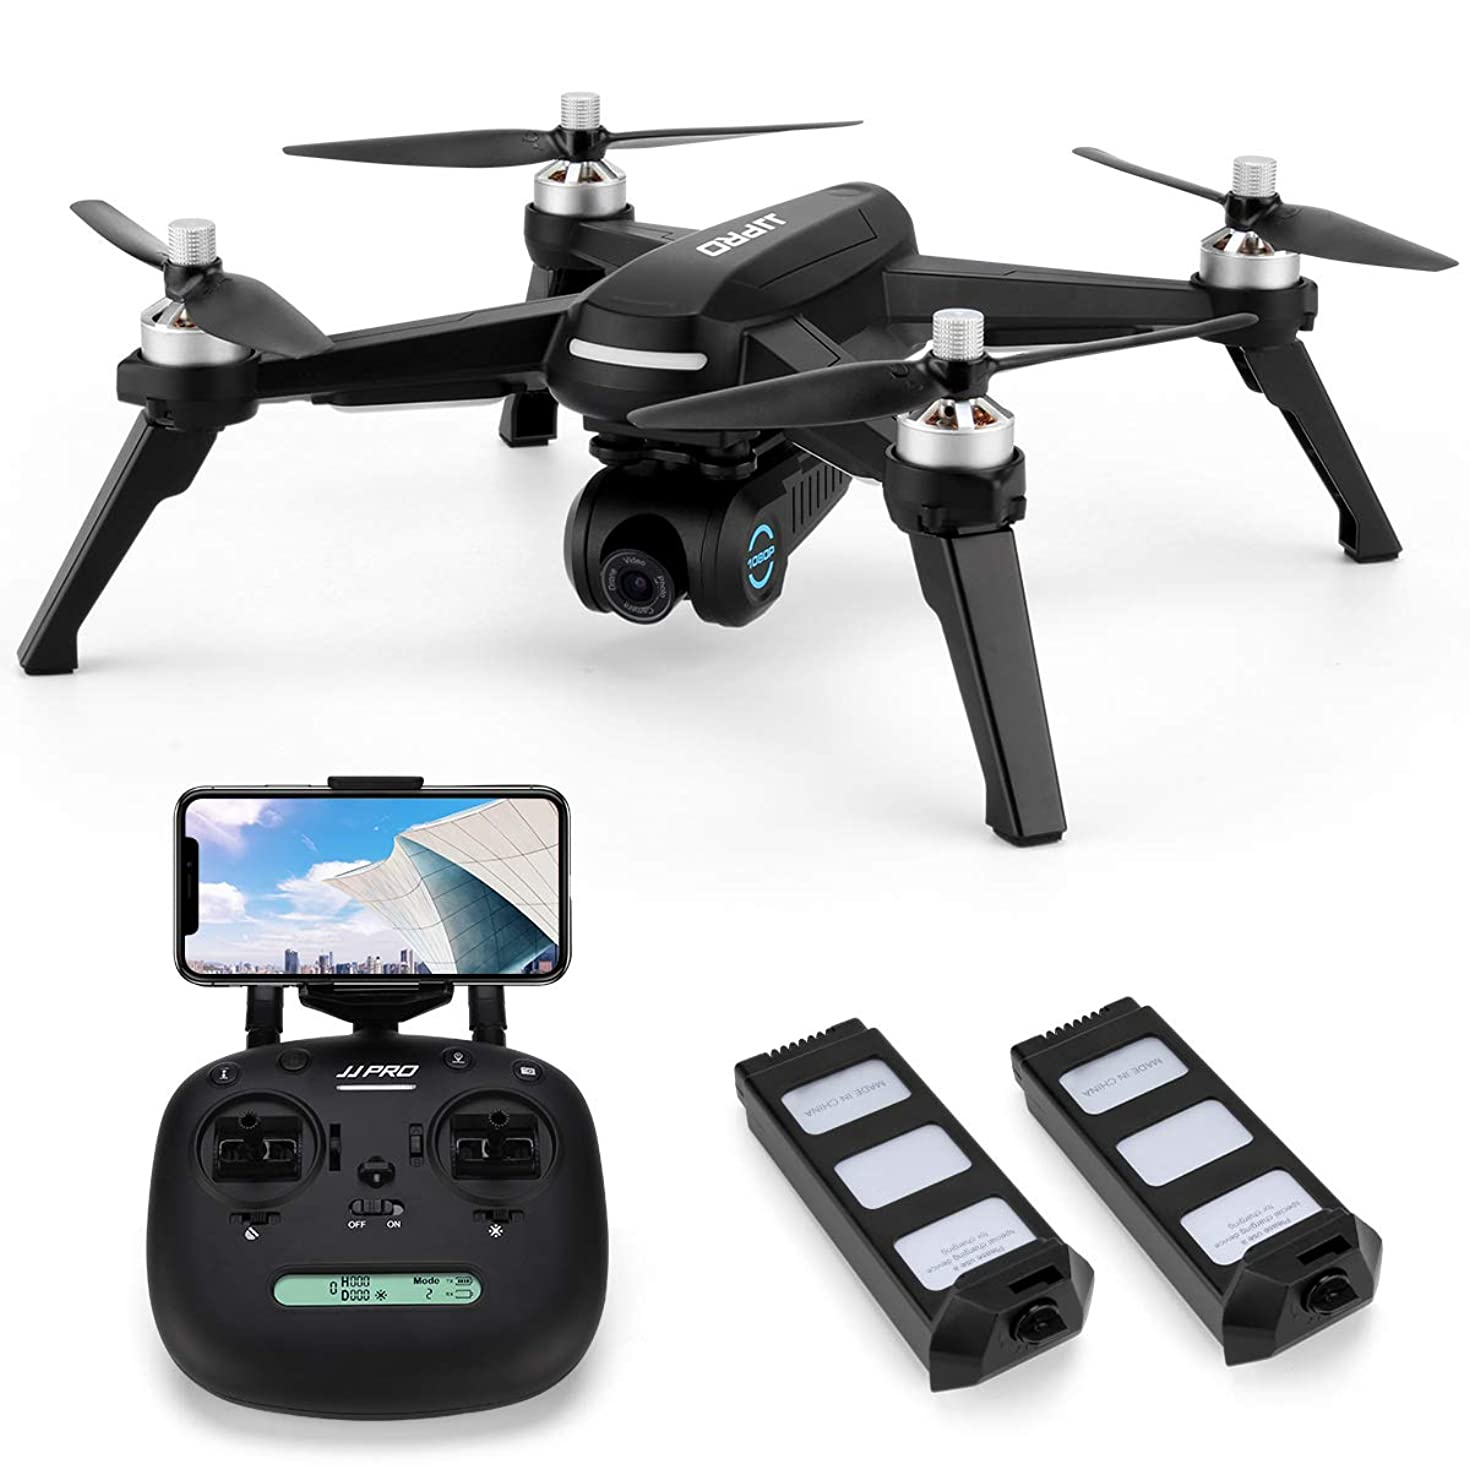 JJRC X5 FPV Drone with 1080P HD Camera Live Video and GPS Return Home Quadcopter with Brushless Motor & 90°Adjustable Camera-Follow Me, Flight Surround Me, Long Control Range, Altitude Hold (Black)